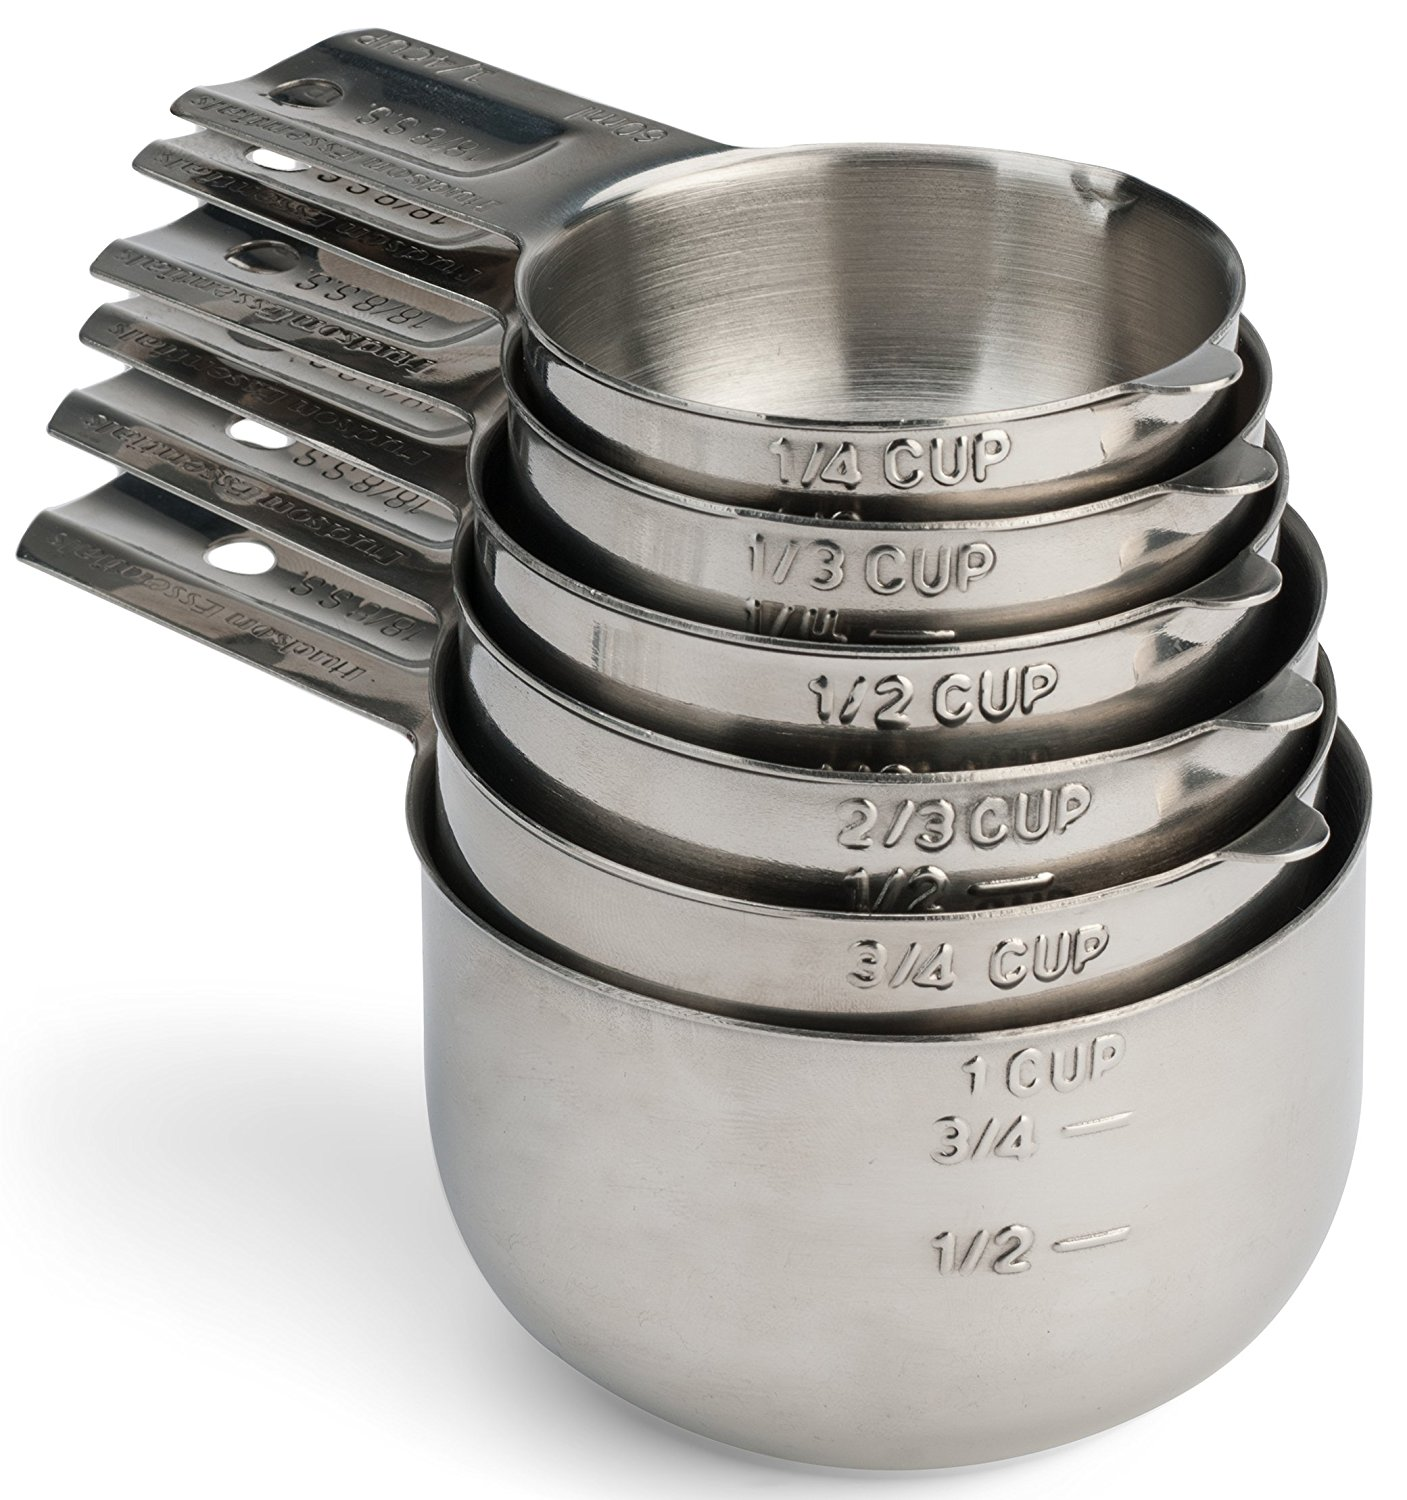 stainless steel measuring cups - bakeware - measuring cups - best baking tools - baking tools